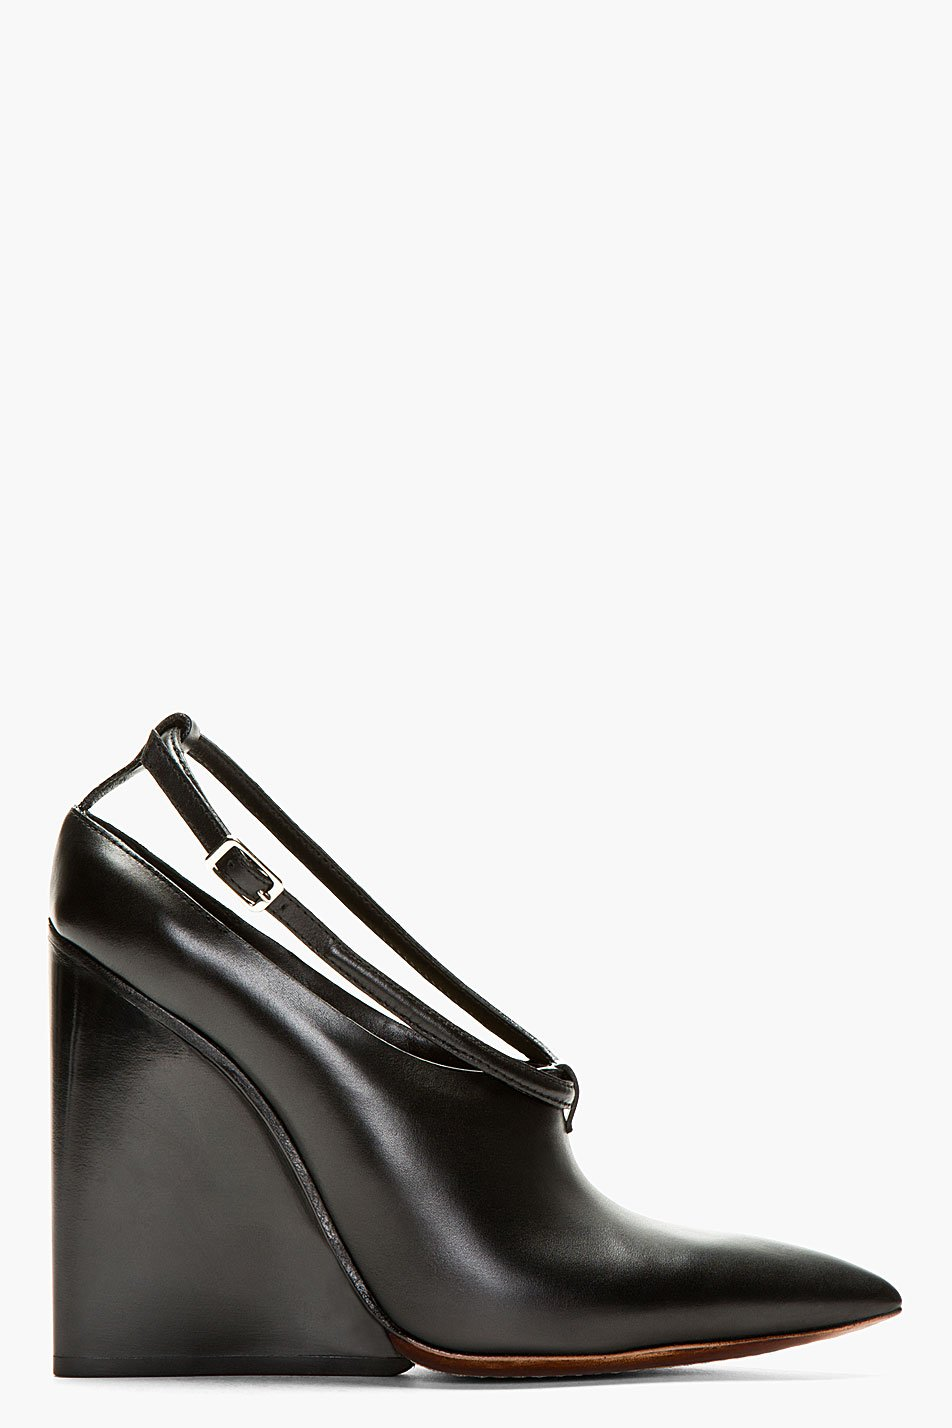 Costume national black leather point toe wedge heel